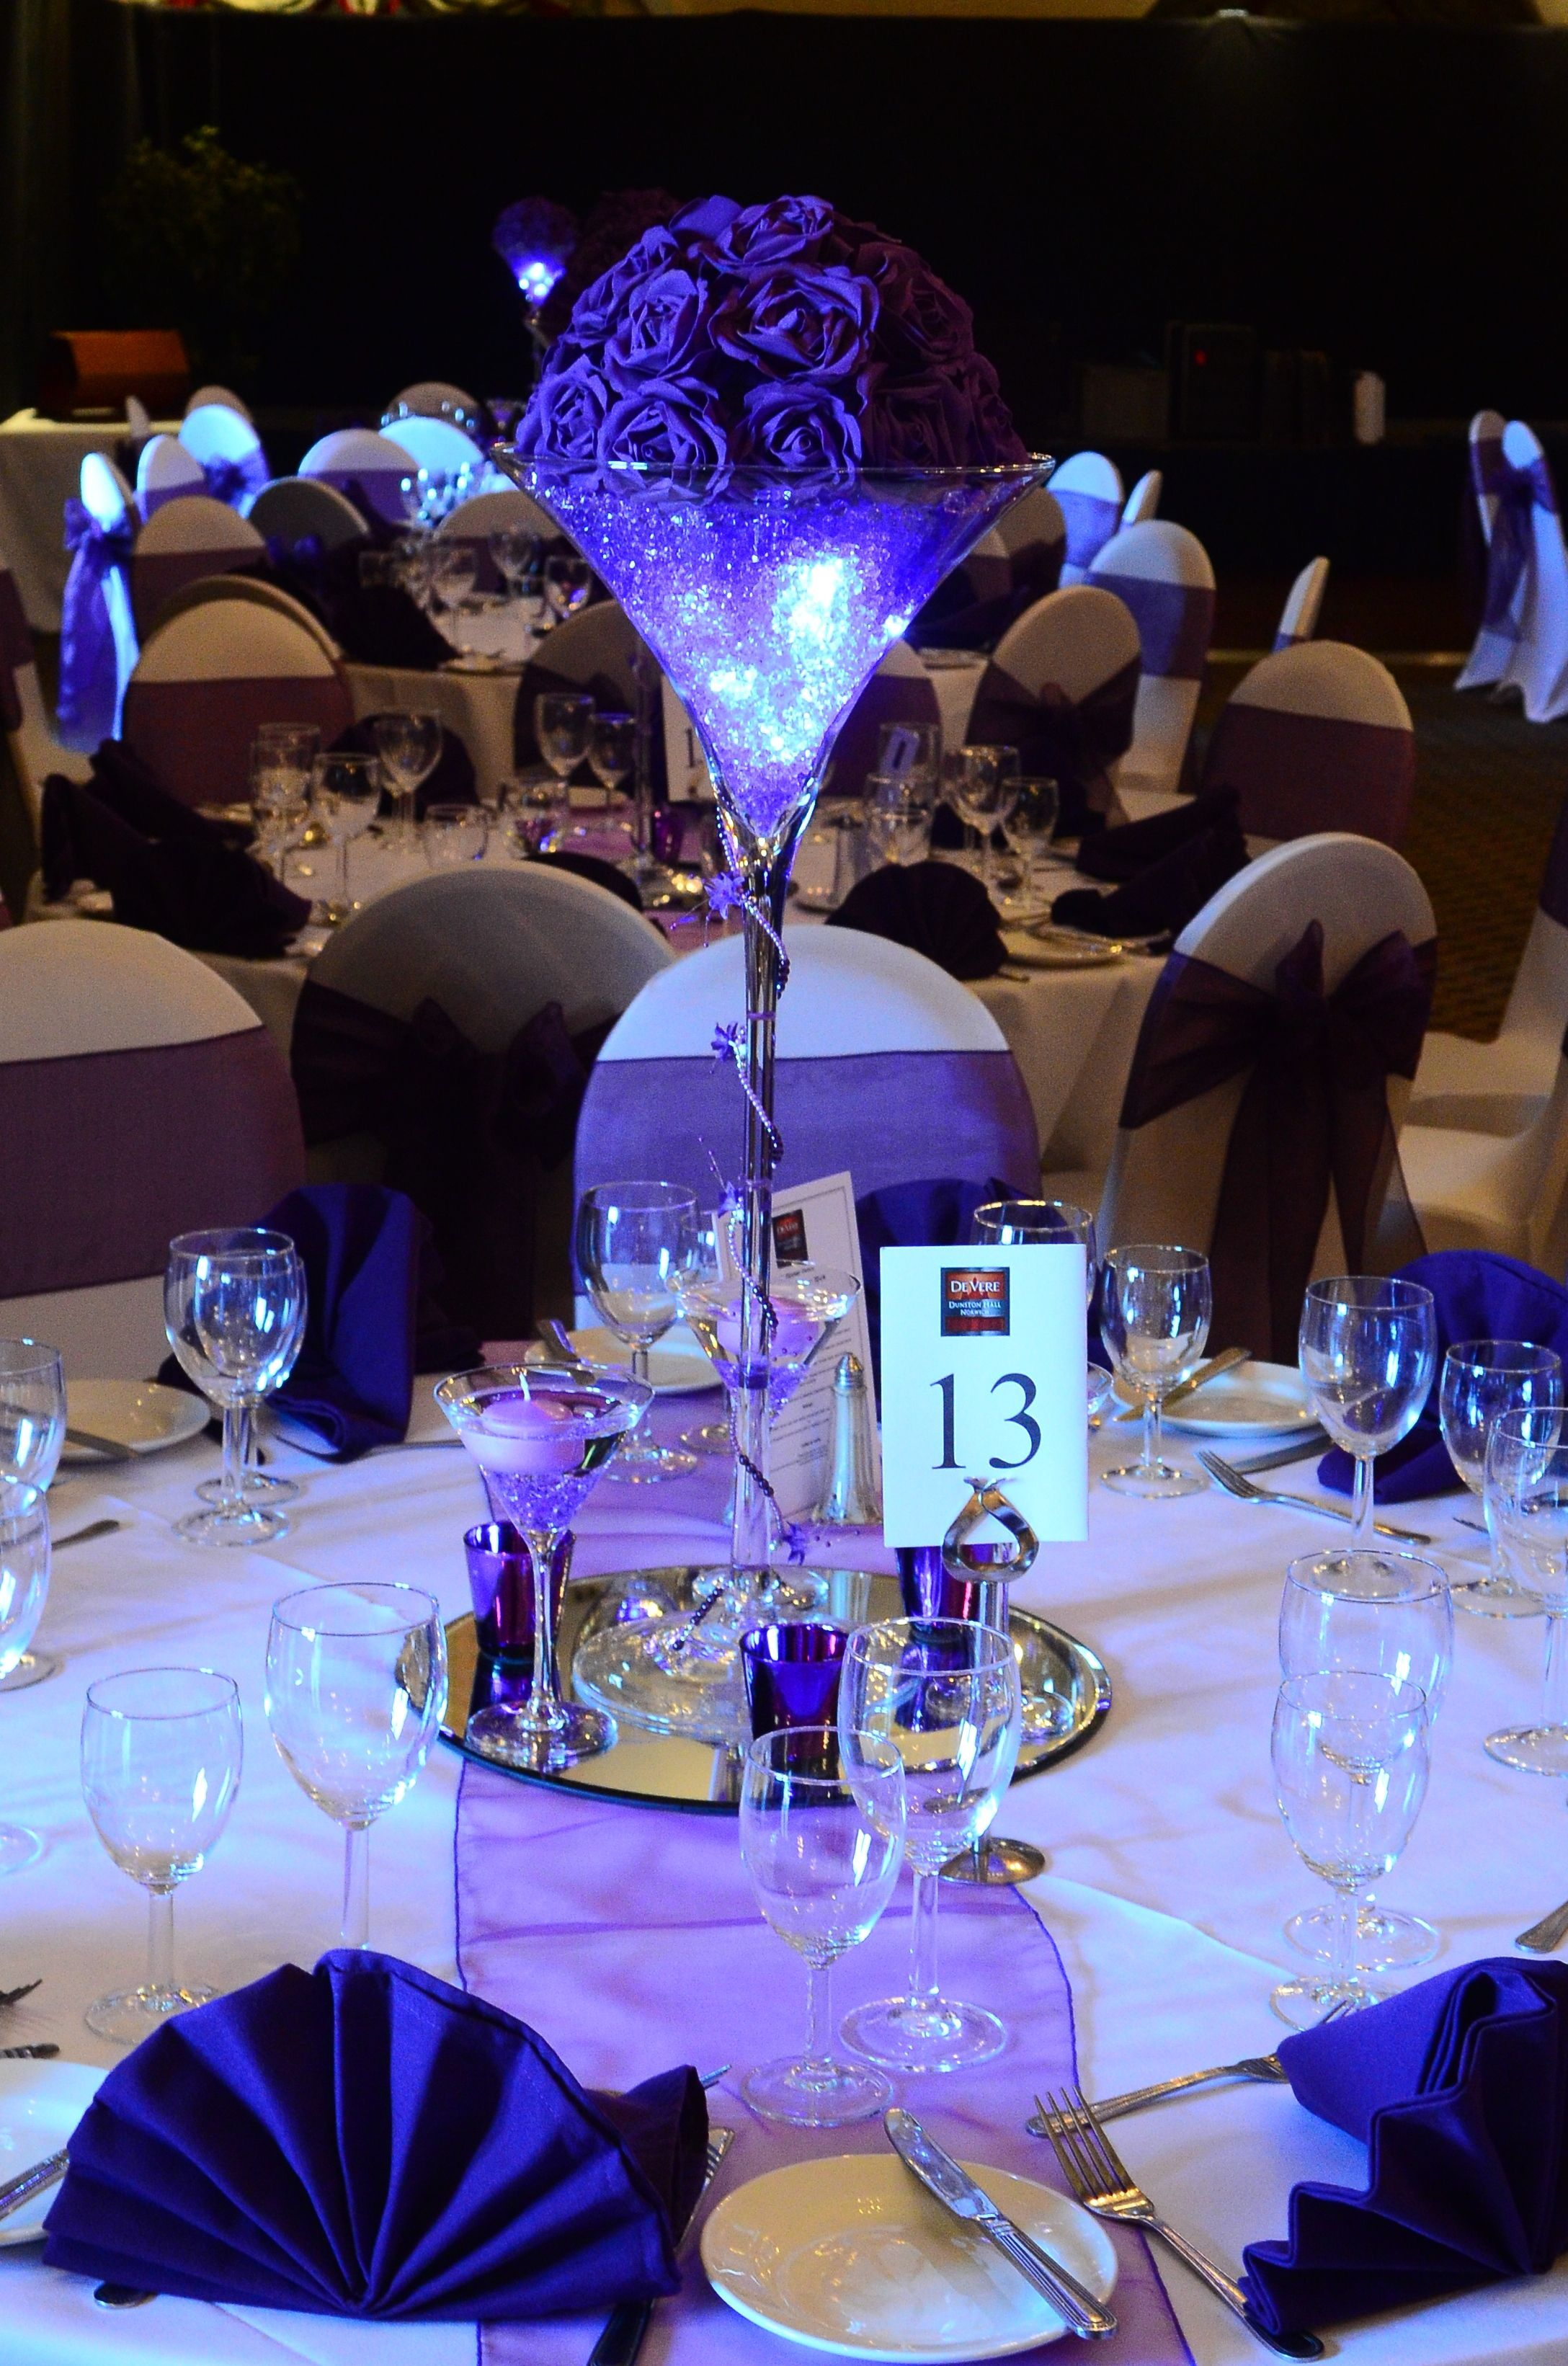 Martini Vase Table Centrepiece In Purple With Lights.